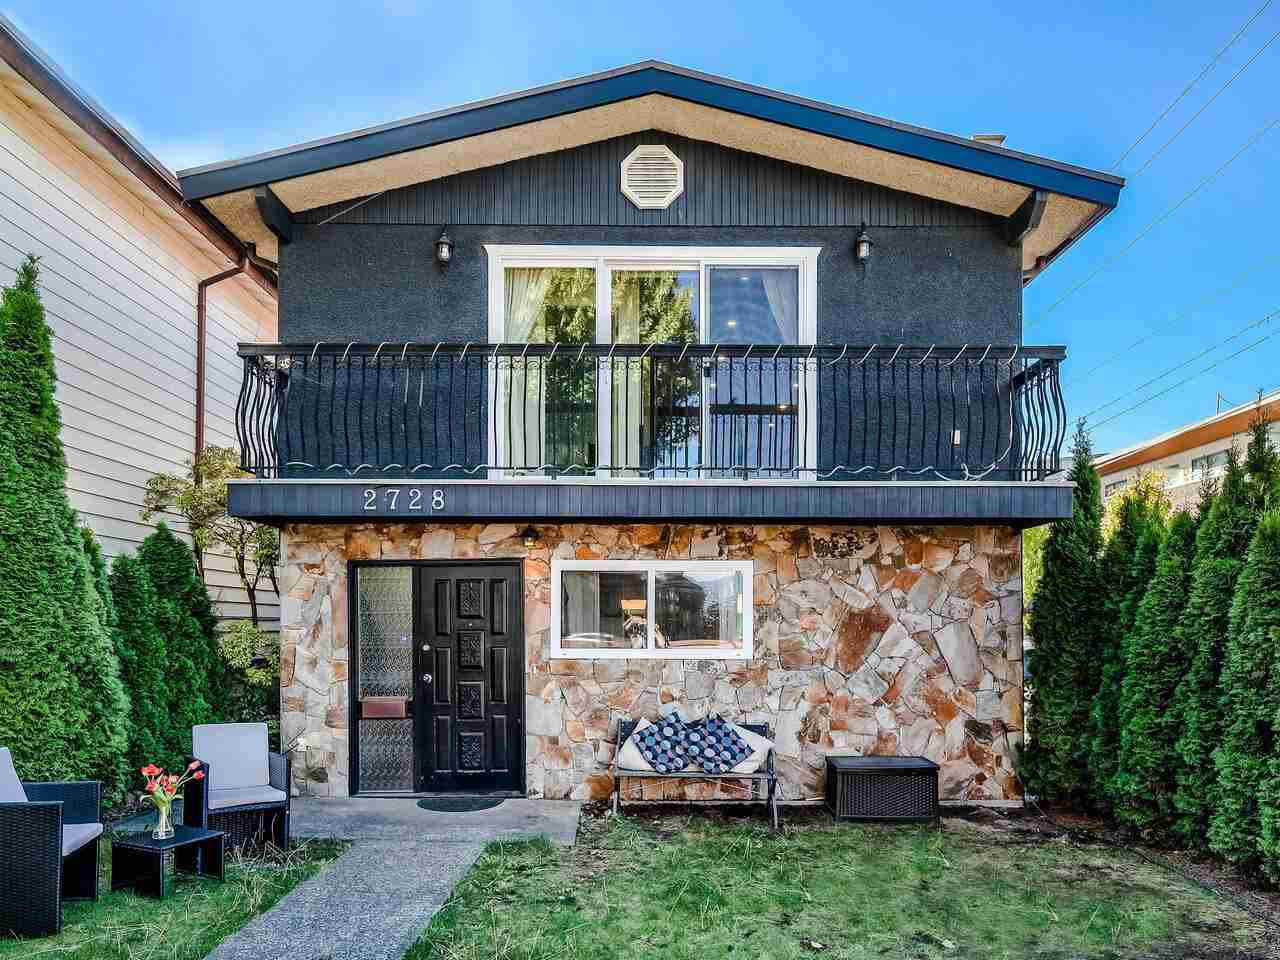 Main Photo: 2728 E 27TH Avenue in Vancouver: Renfrew Heights House for sale (Vancouver East)  : MLS®# R2503259